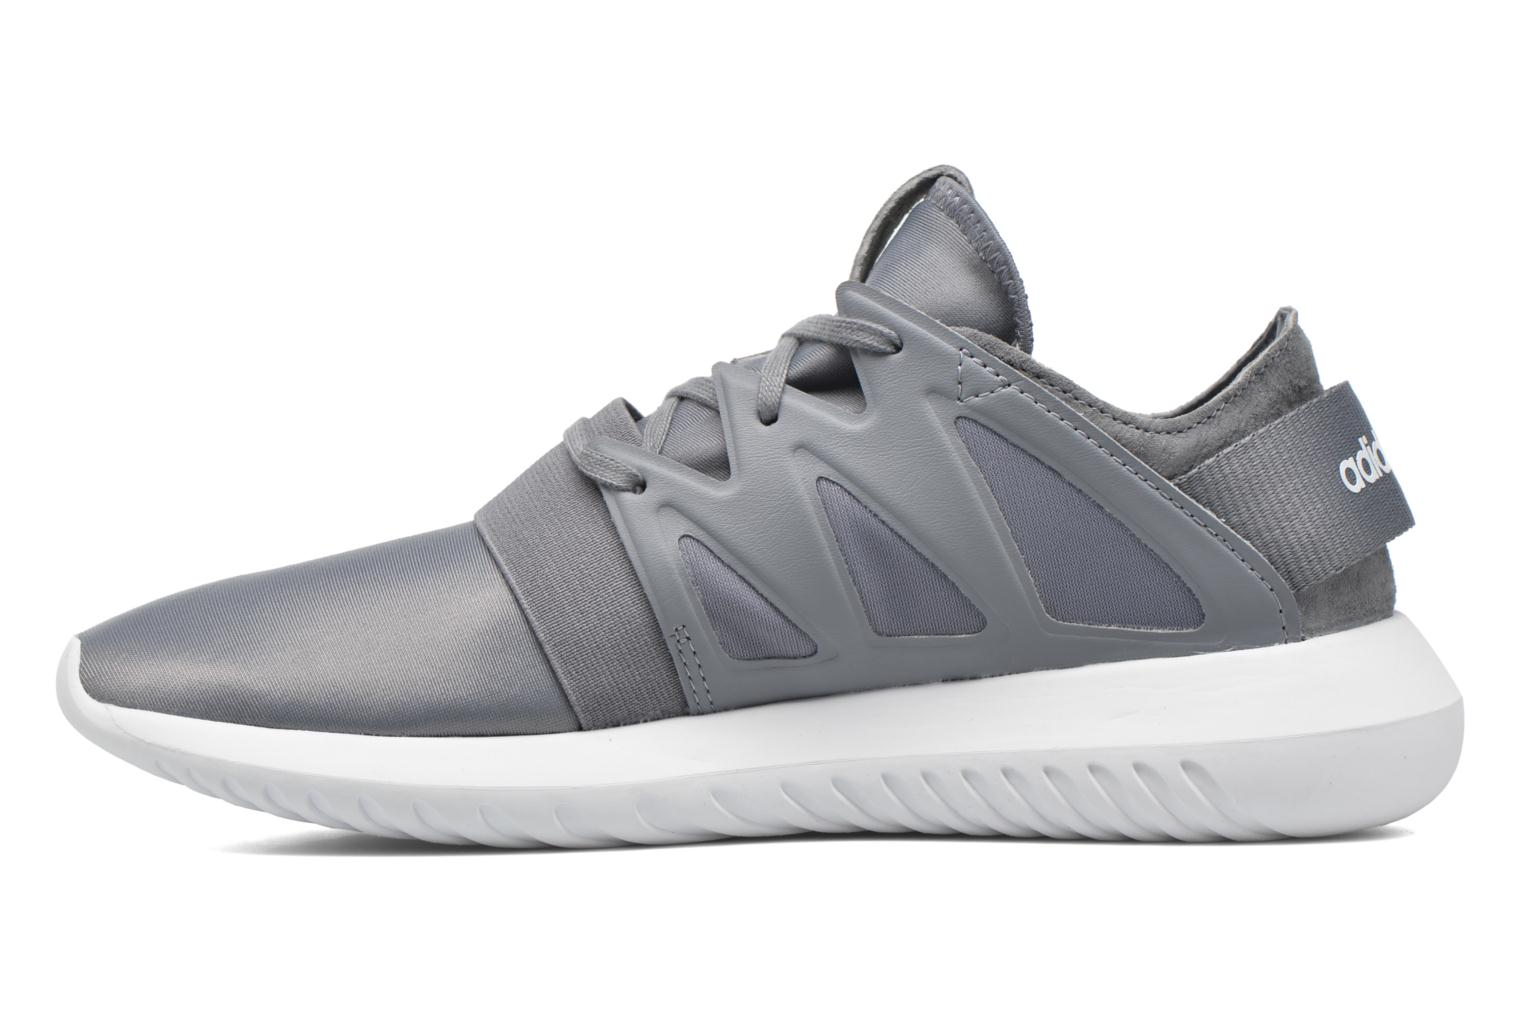 Baskets Adidas Originals Tubular Viral W Gris vue face